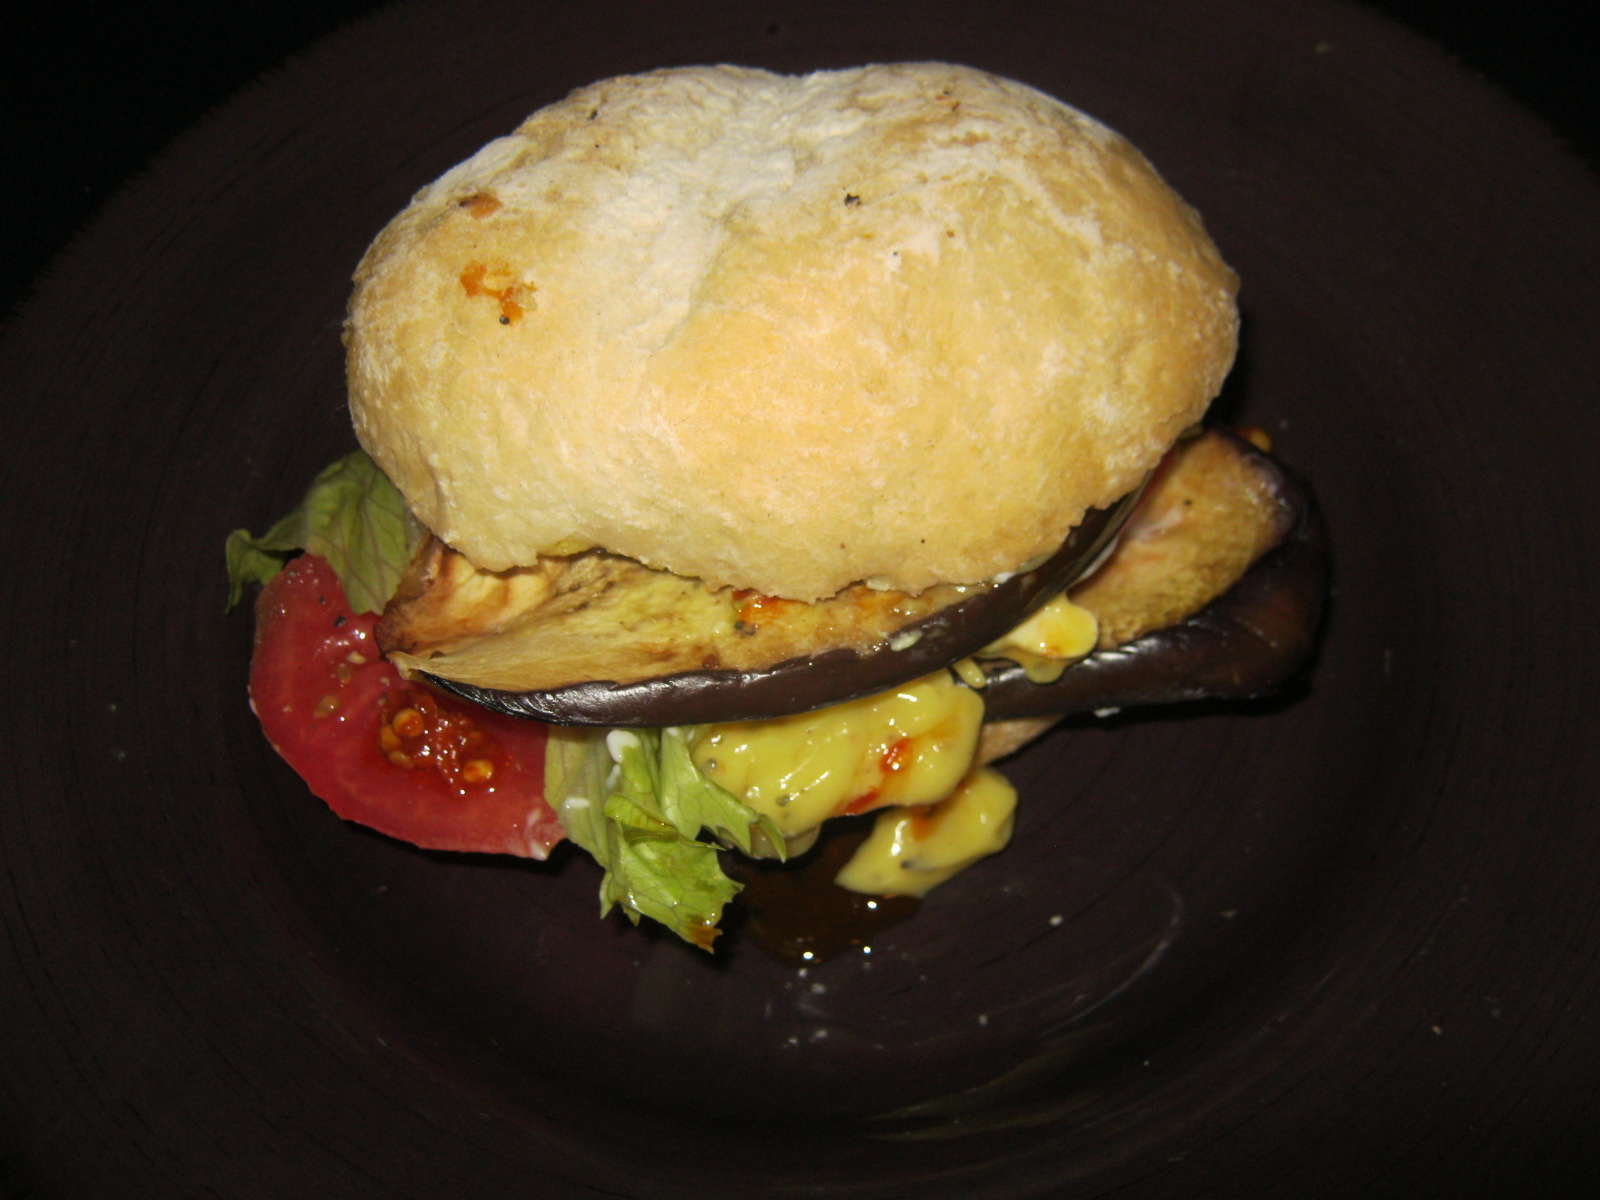 Brinjal burger with Avocado Lettuce and Tomato